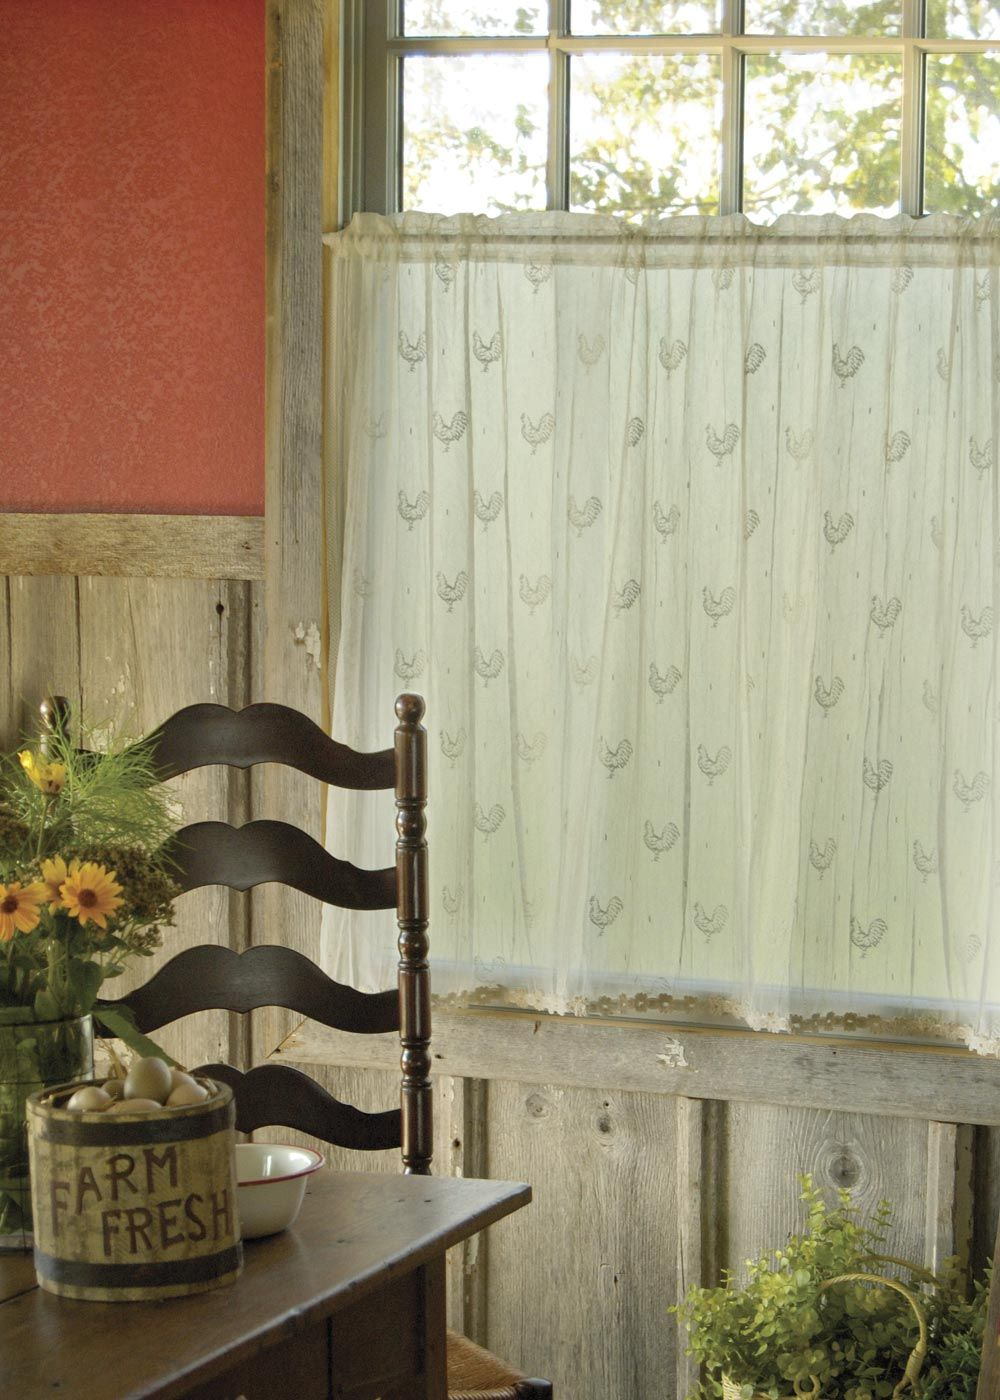 curtains adorable irish lace and sew swag ideas sale curtain scottis heritage for home valances how to decoration enchanting valance